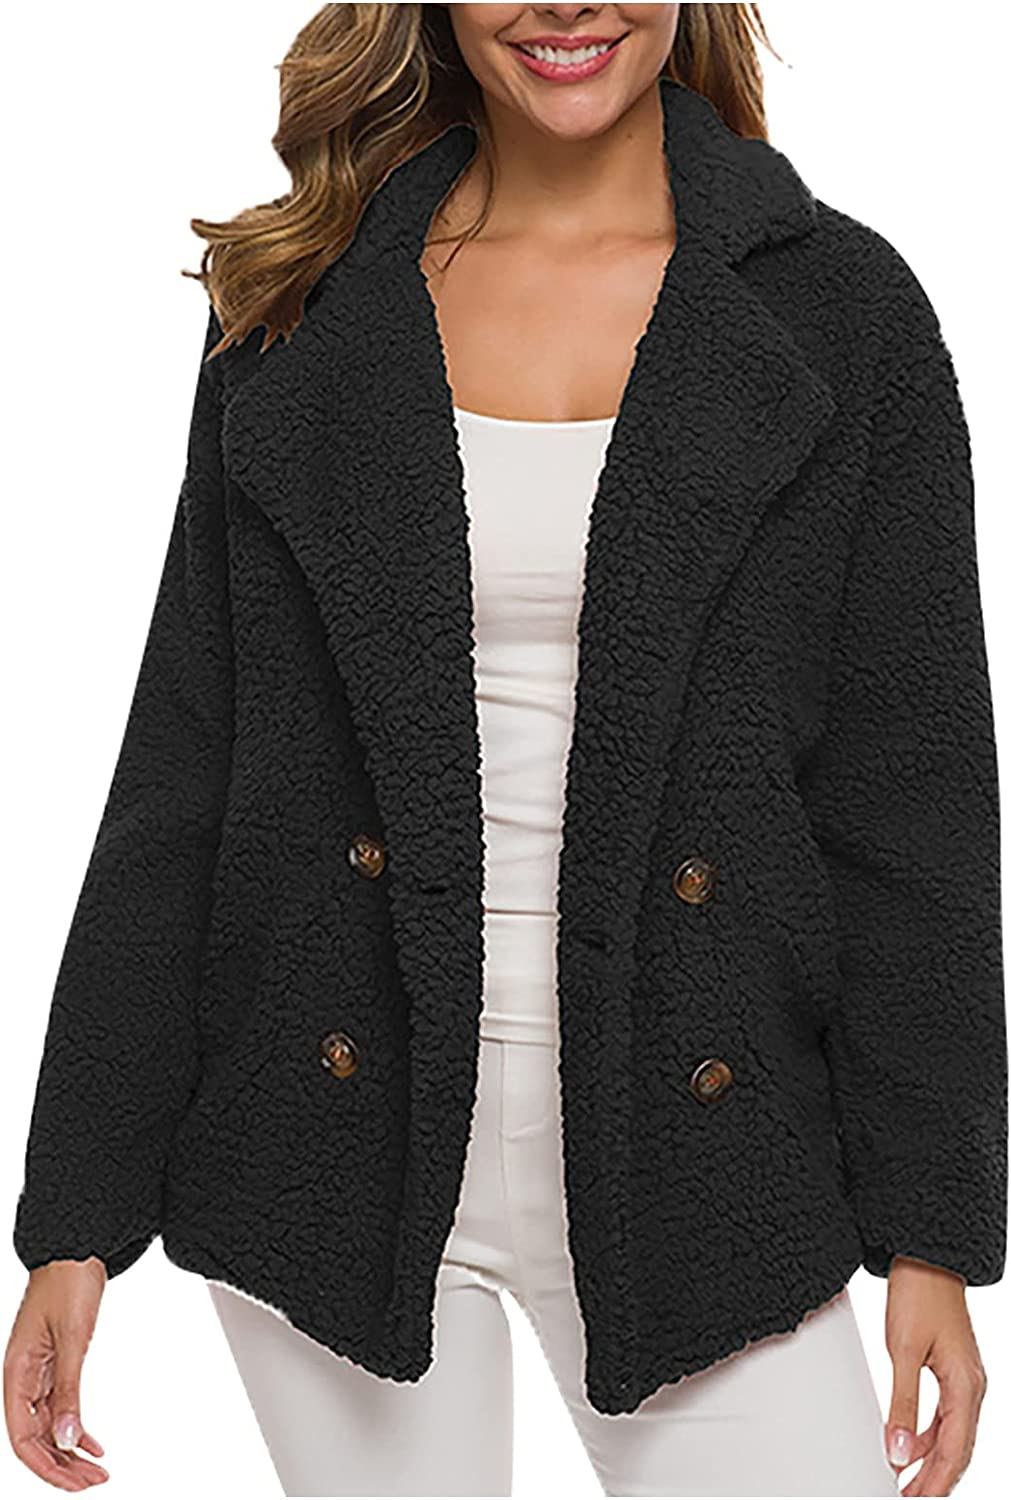 Winter Coat For Women Thickened Suit Collar Button Padded Lambswool Notch Lapel Jackets Warm Comfy Loose Open Front Cardigan